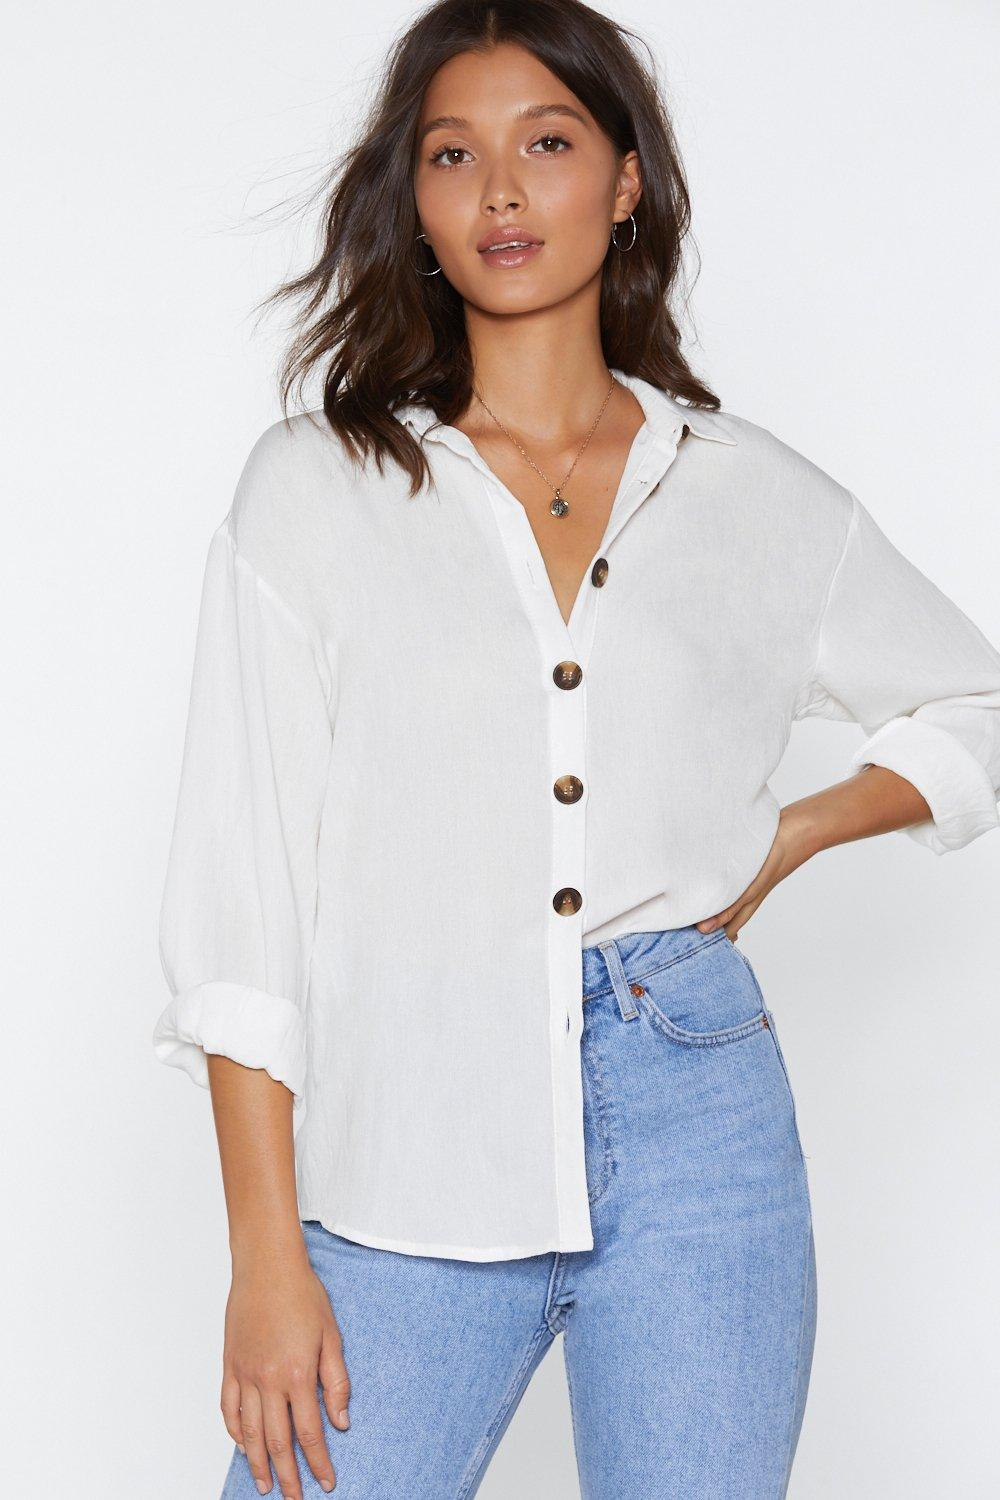 cda2d219b5 Relax Babe Button Shirt. Hover to zoom